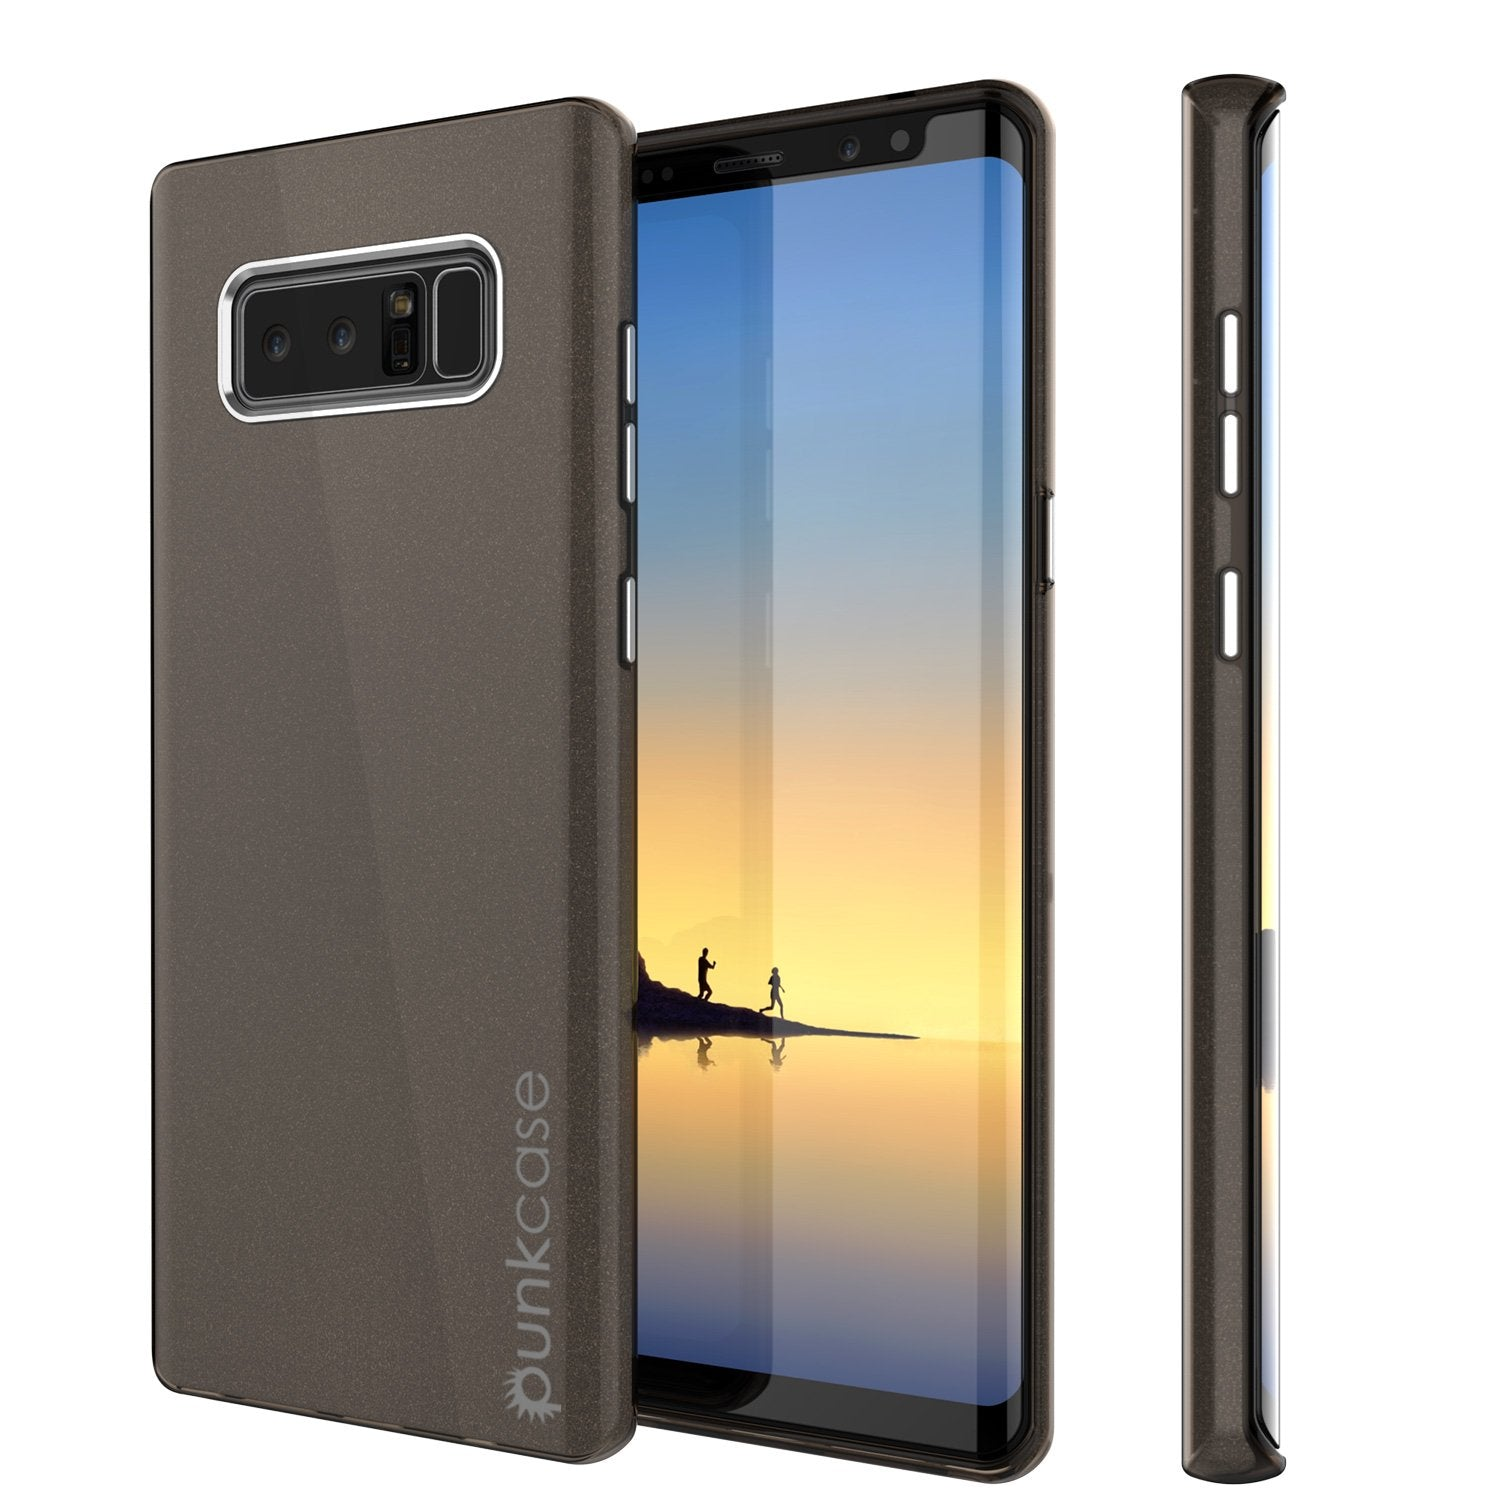 Galaxy Note 8, Punkcase Galactic 2.0 Series Ultra Slim [Black/grey]